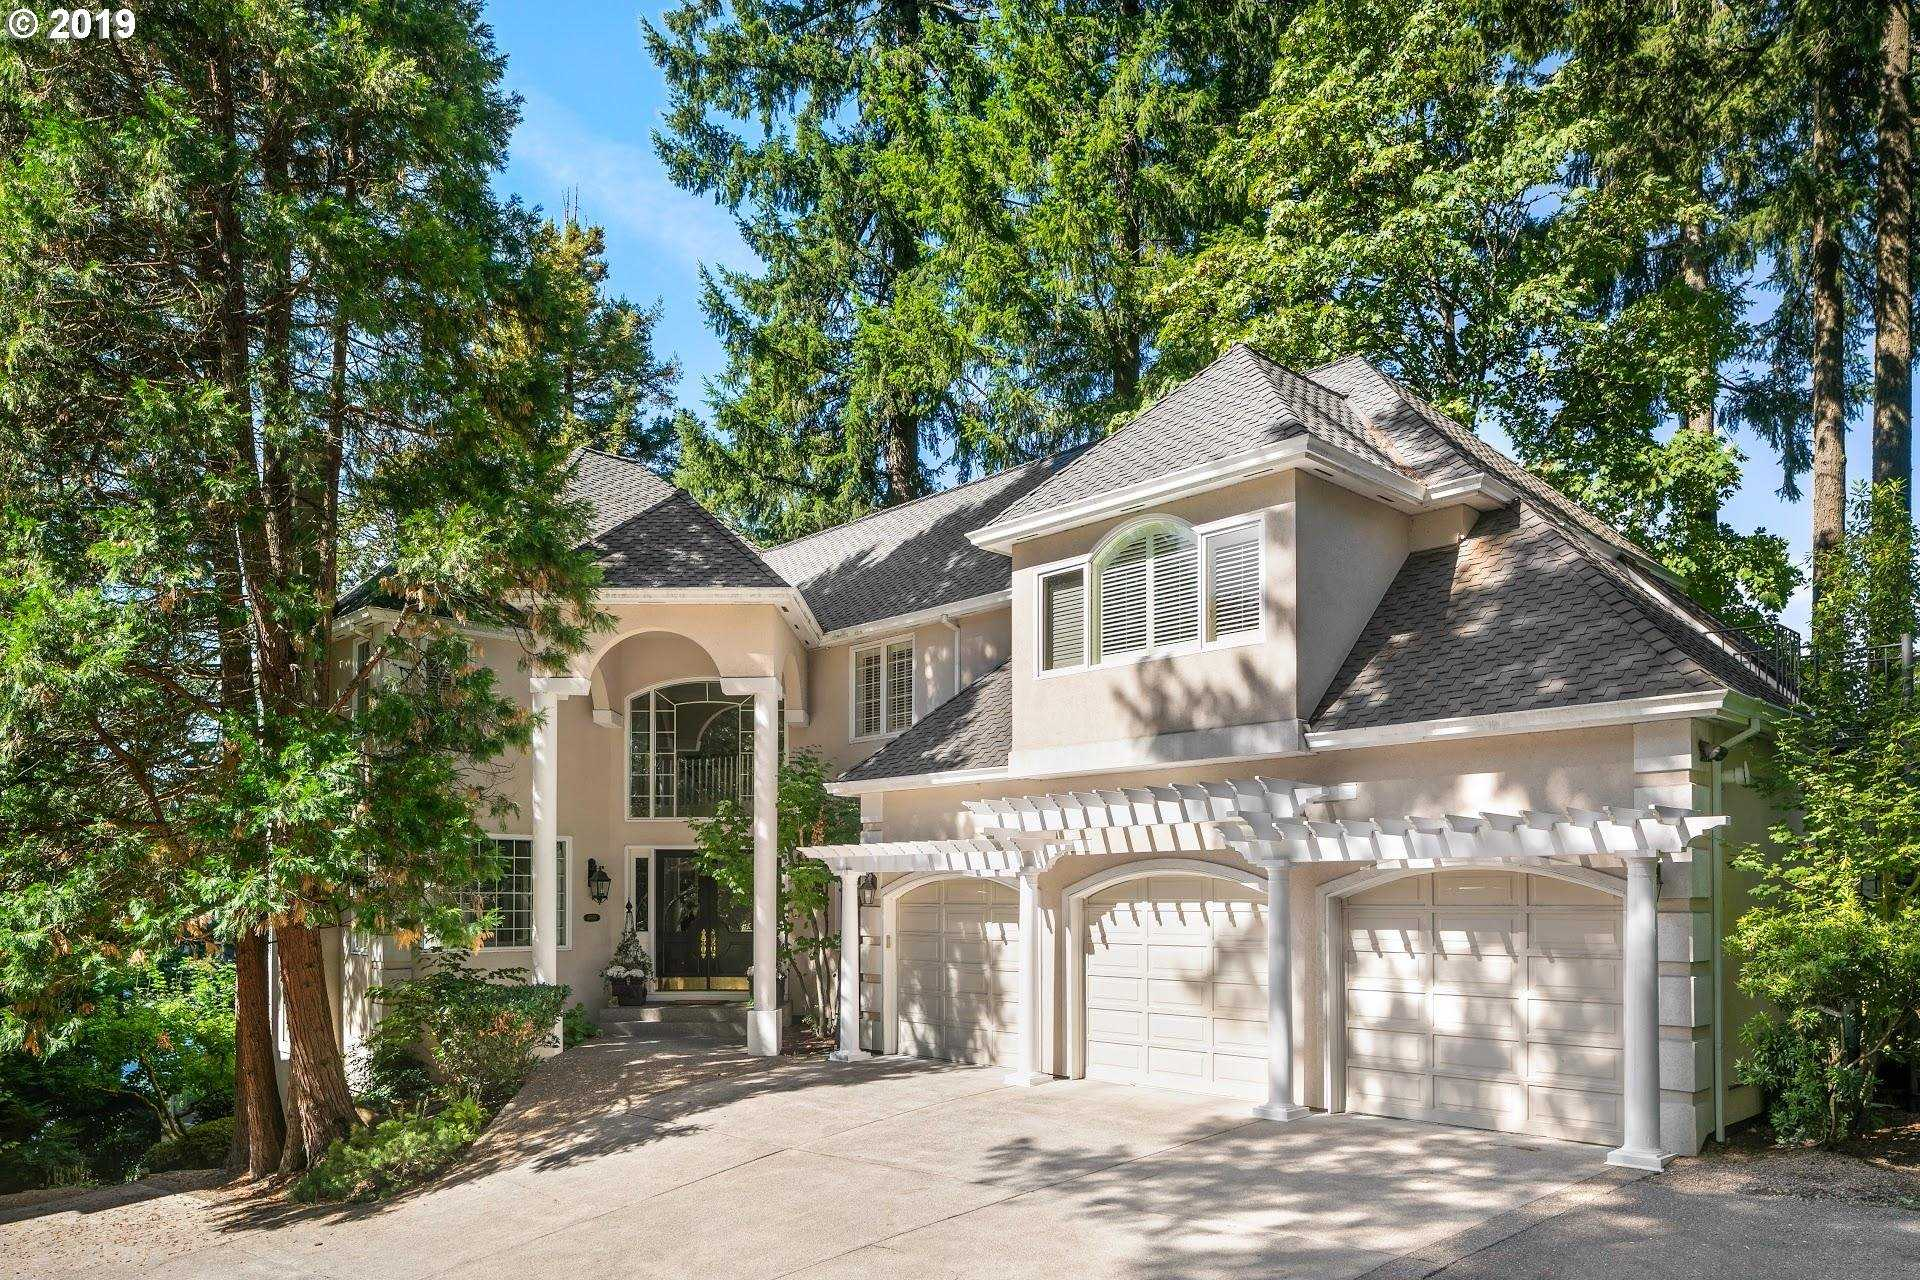 $2,895,000 - 5Br/5Ba -  for Sale in Lake Oswego